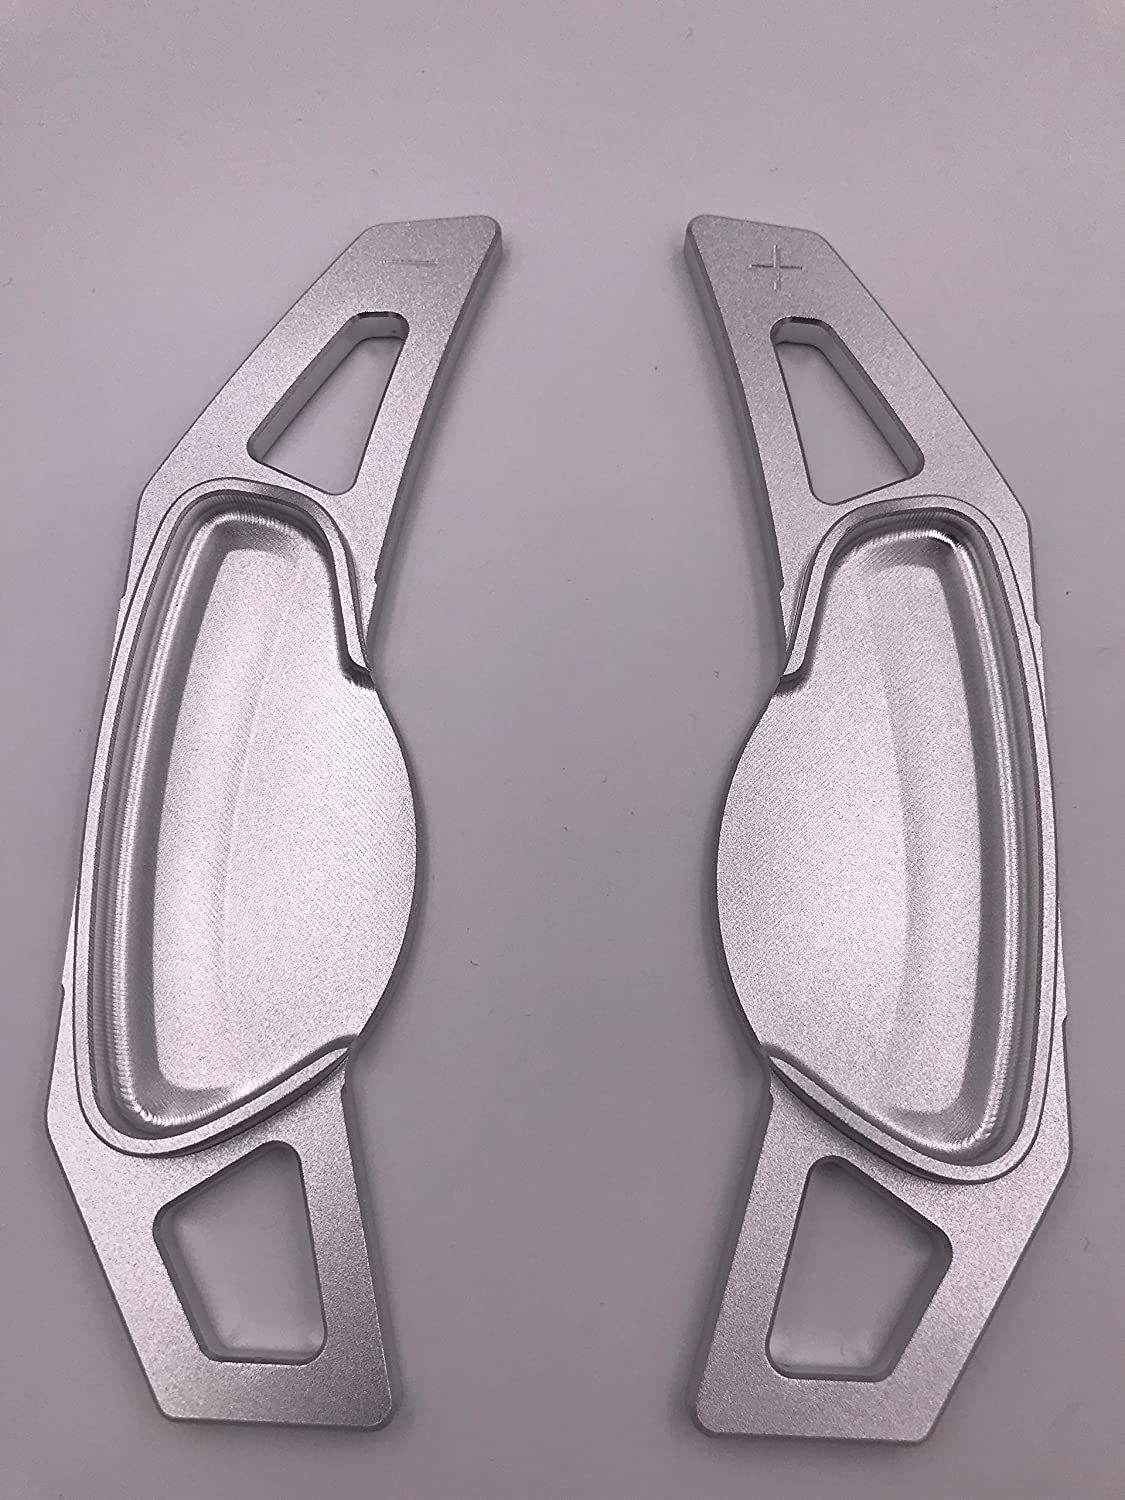 H-Customs DSG Shift Paddle Extensions Paddle Shifter for Smart 451 aluminum anodized silver